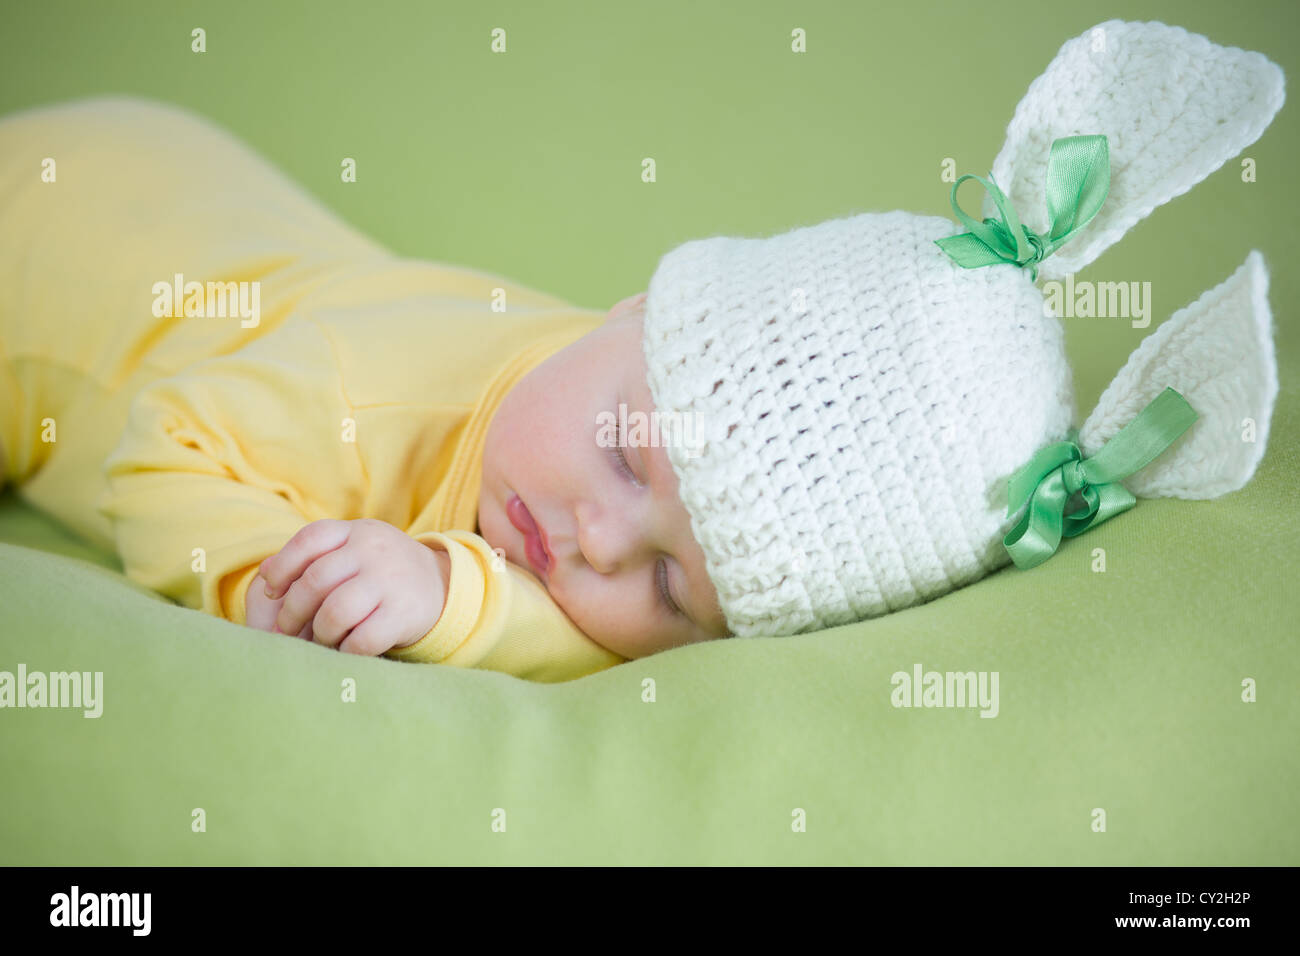 sleeping bunny baby in funny hat on green background